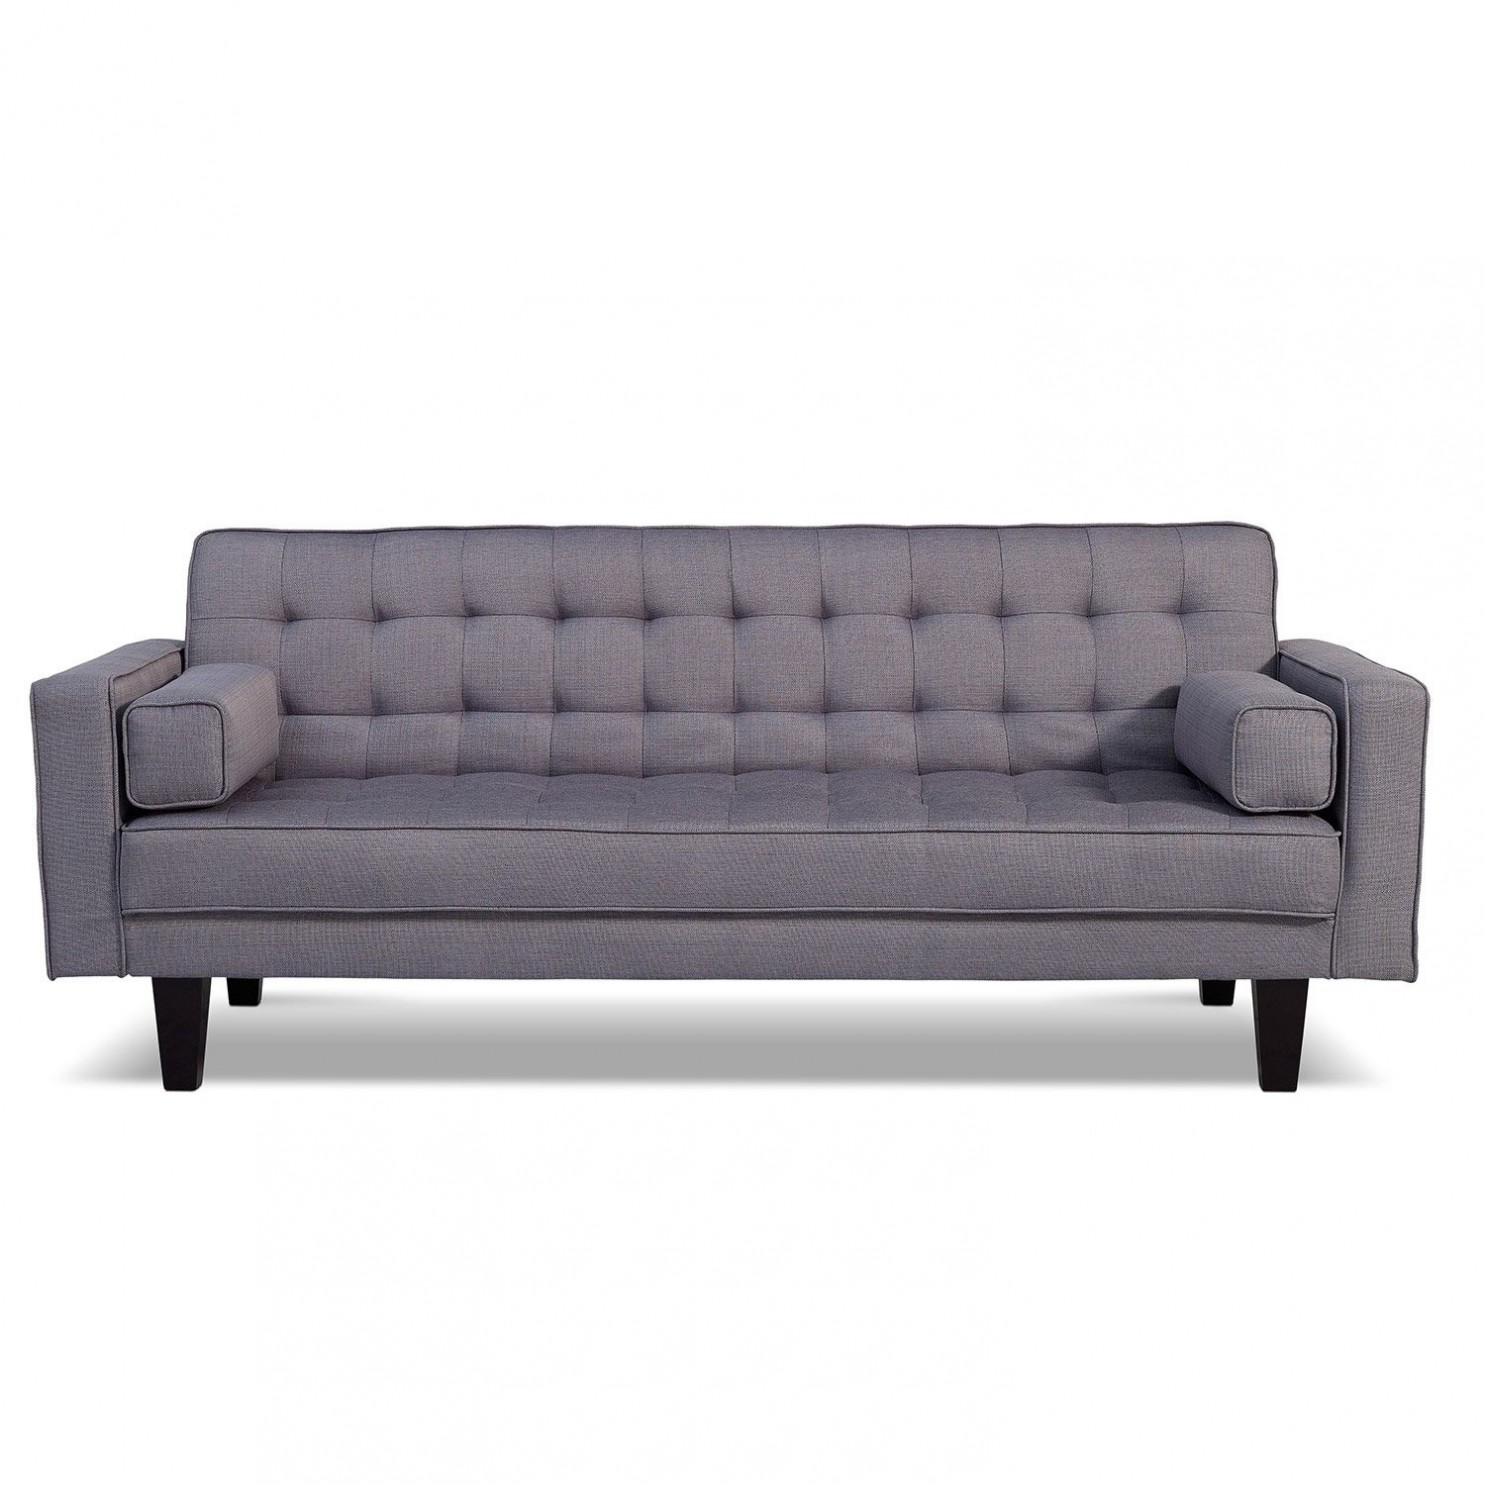 Couch Billig Value City Does Have It In Gray Bianca Futon Sofa Bed Vianova